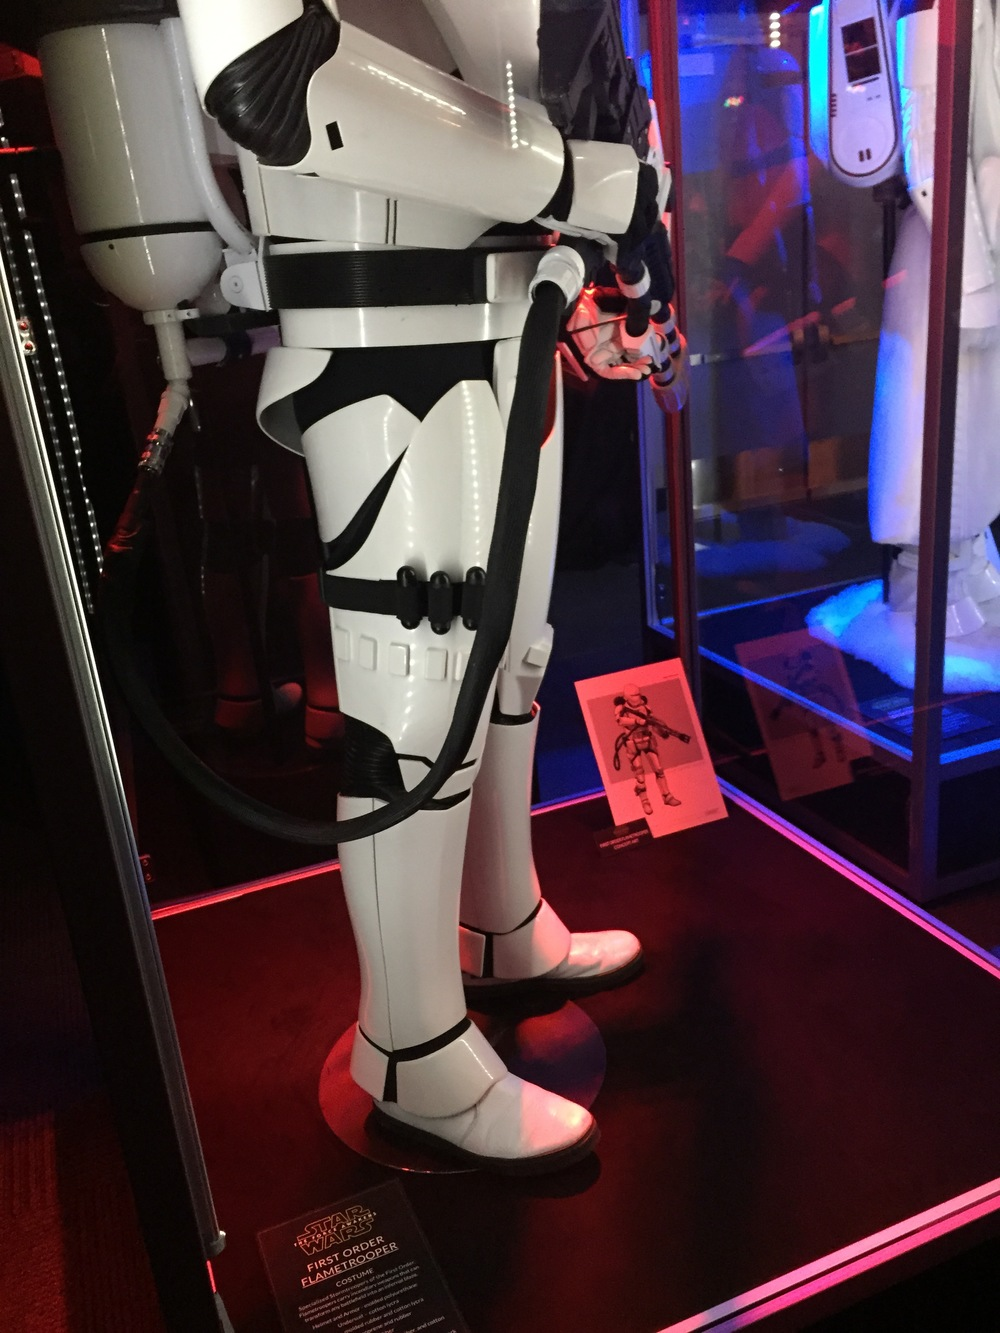 Force Awakens Exhibit  - 65.jpg